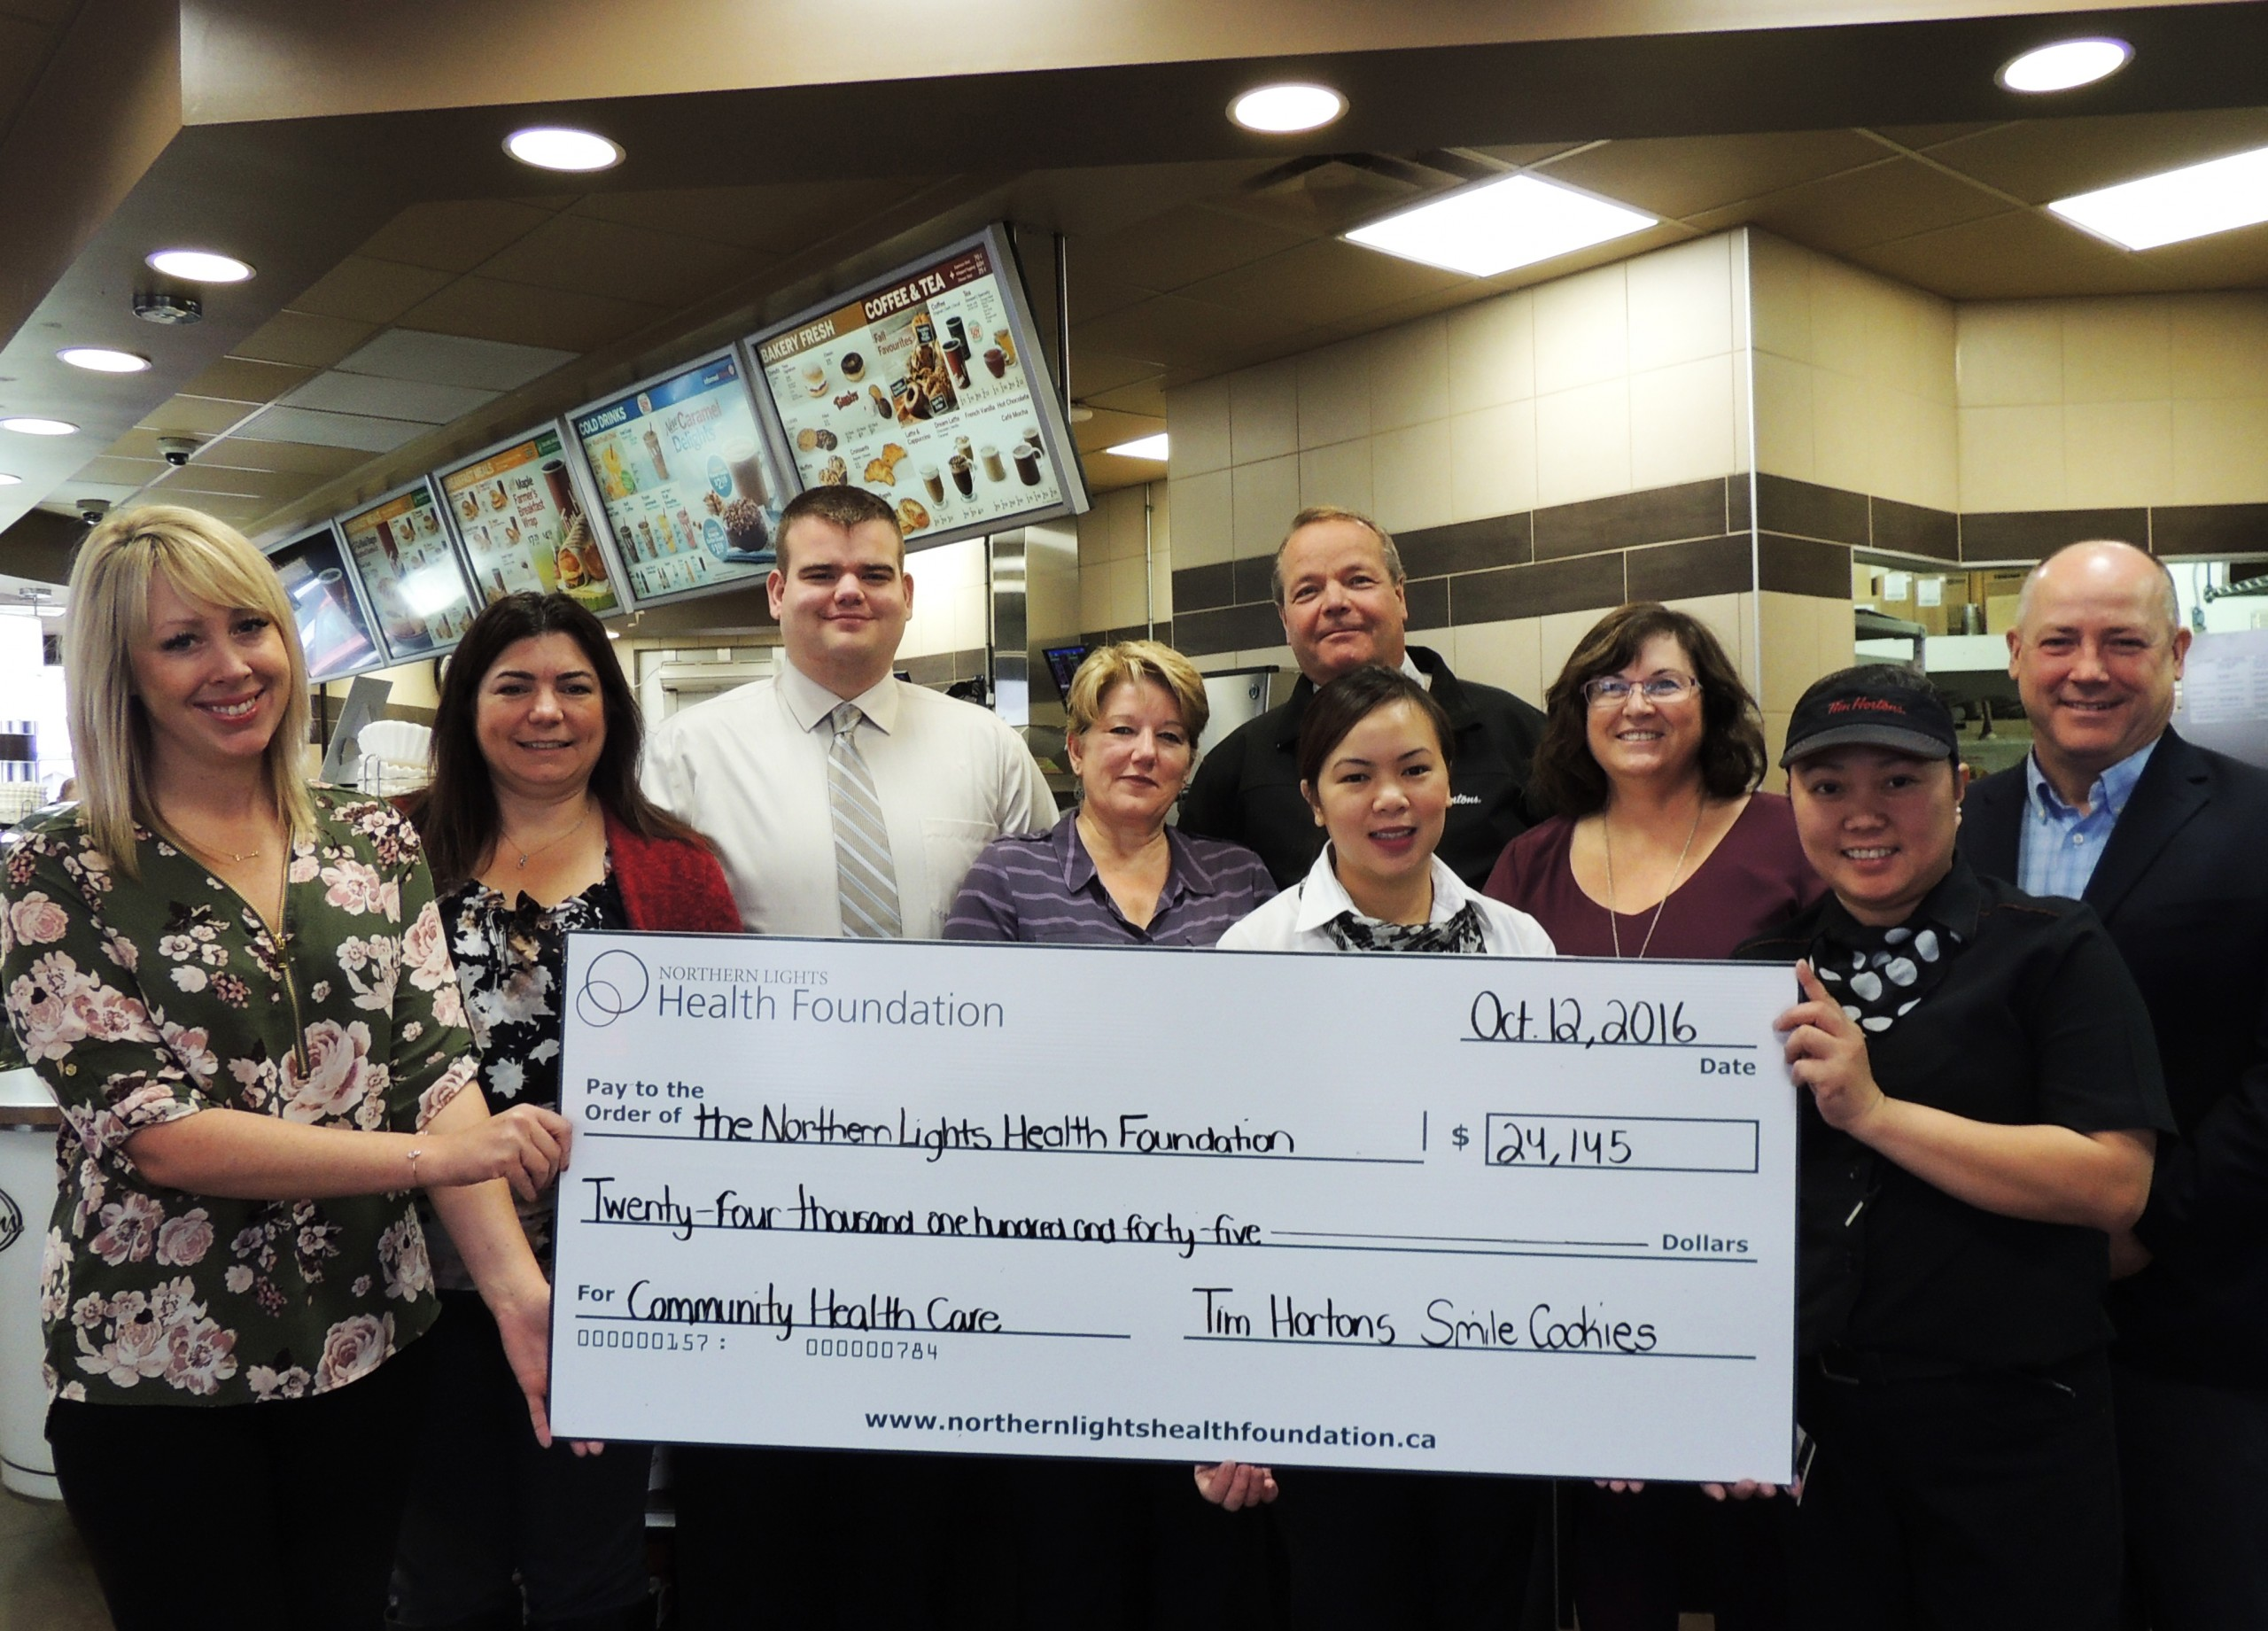 Smile Cookies raise $24,000 for Northern Lights Health Foundation